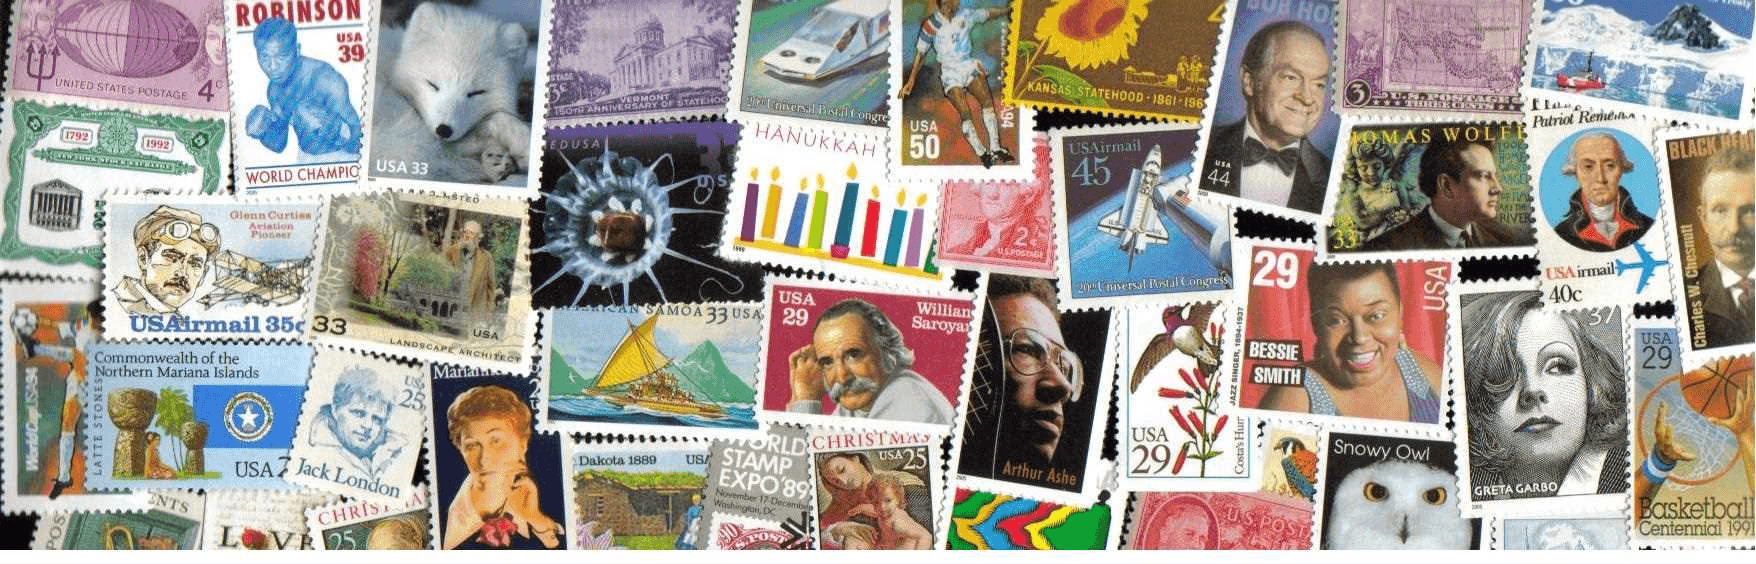 "<div class=""caption""><h1>A great selection</h1><p>of collectible stamps and souvenir sheets</p></div>"